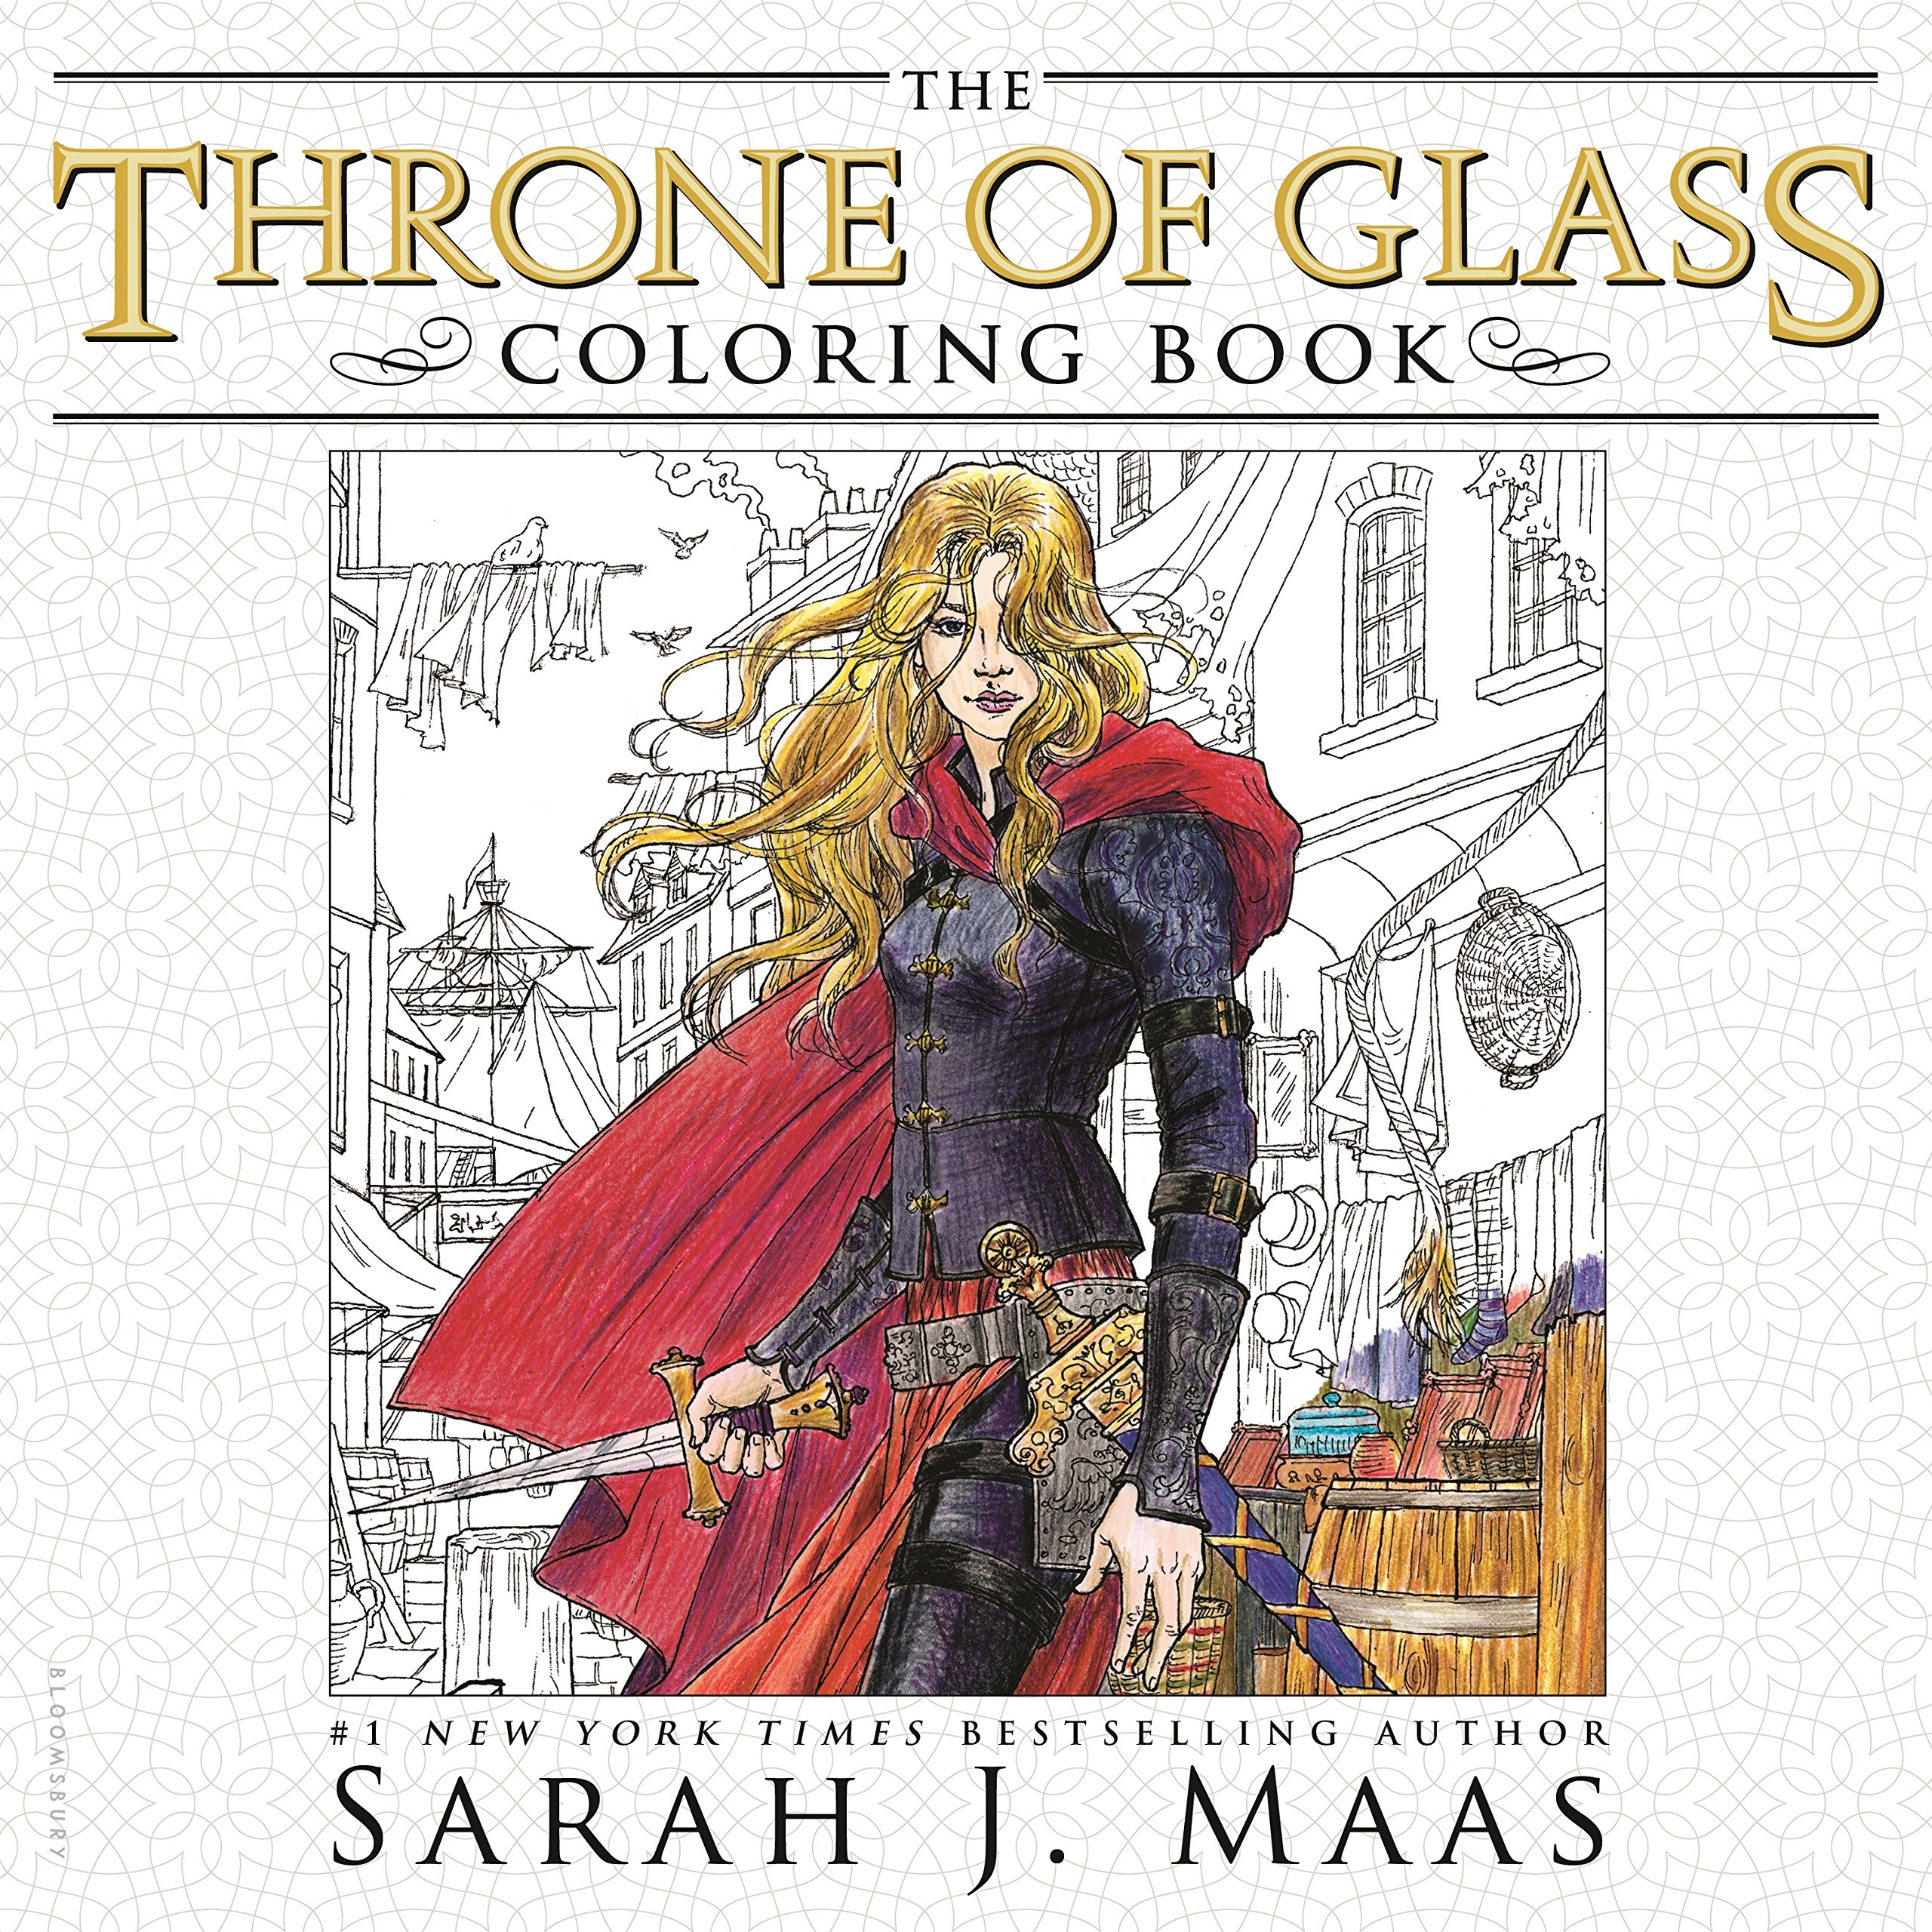 Amazon.com: The Throne of Glass Coloring Book (9781681193519): Sarah ...